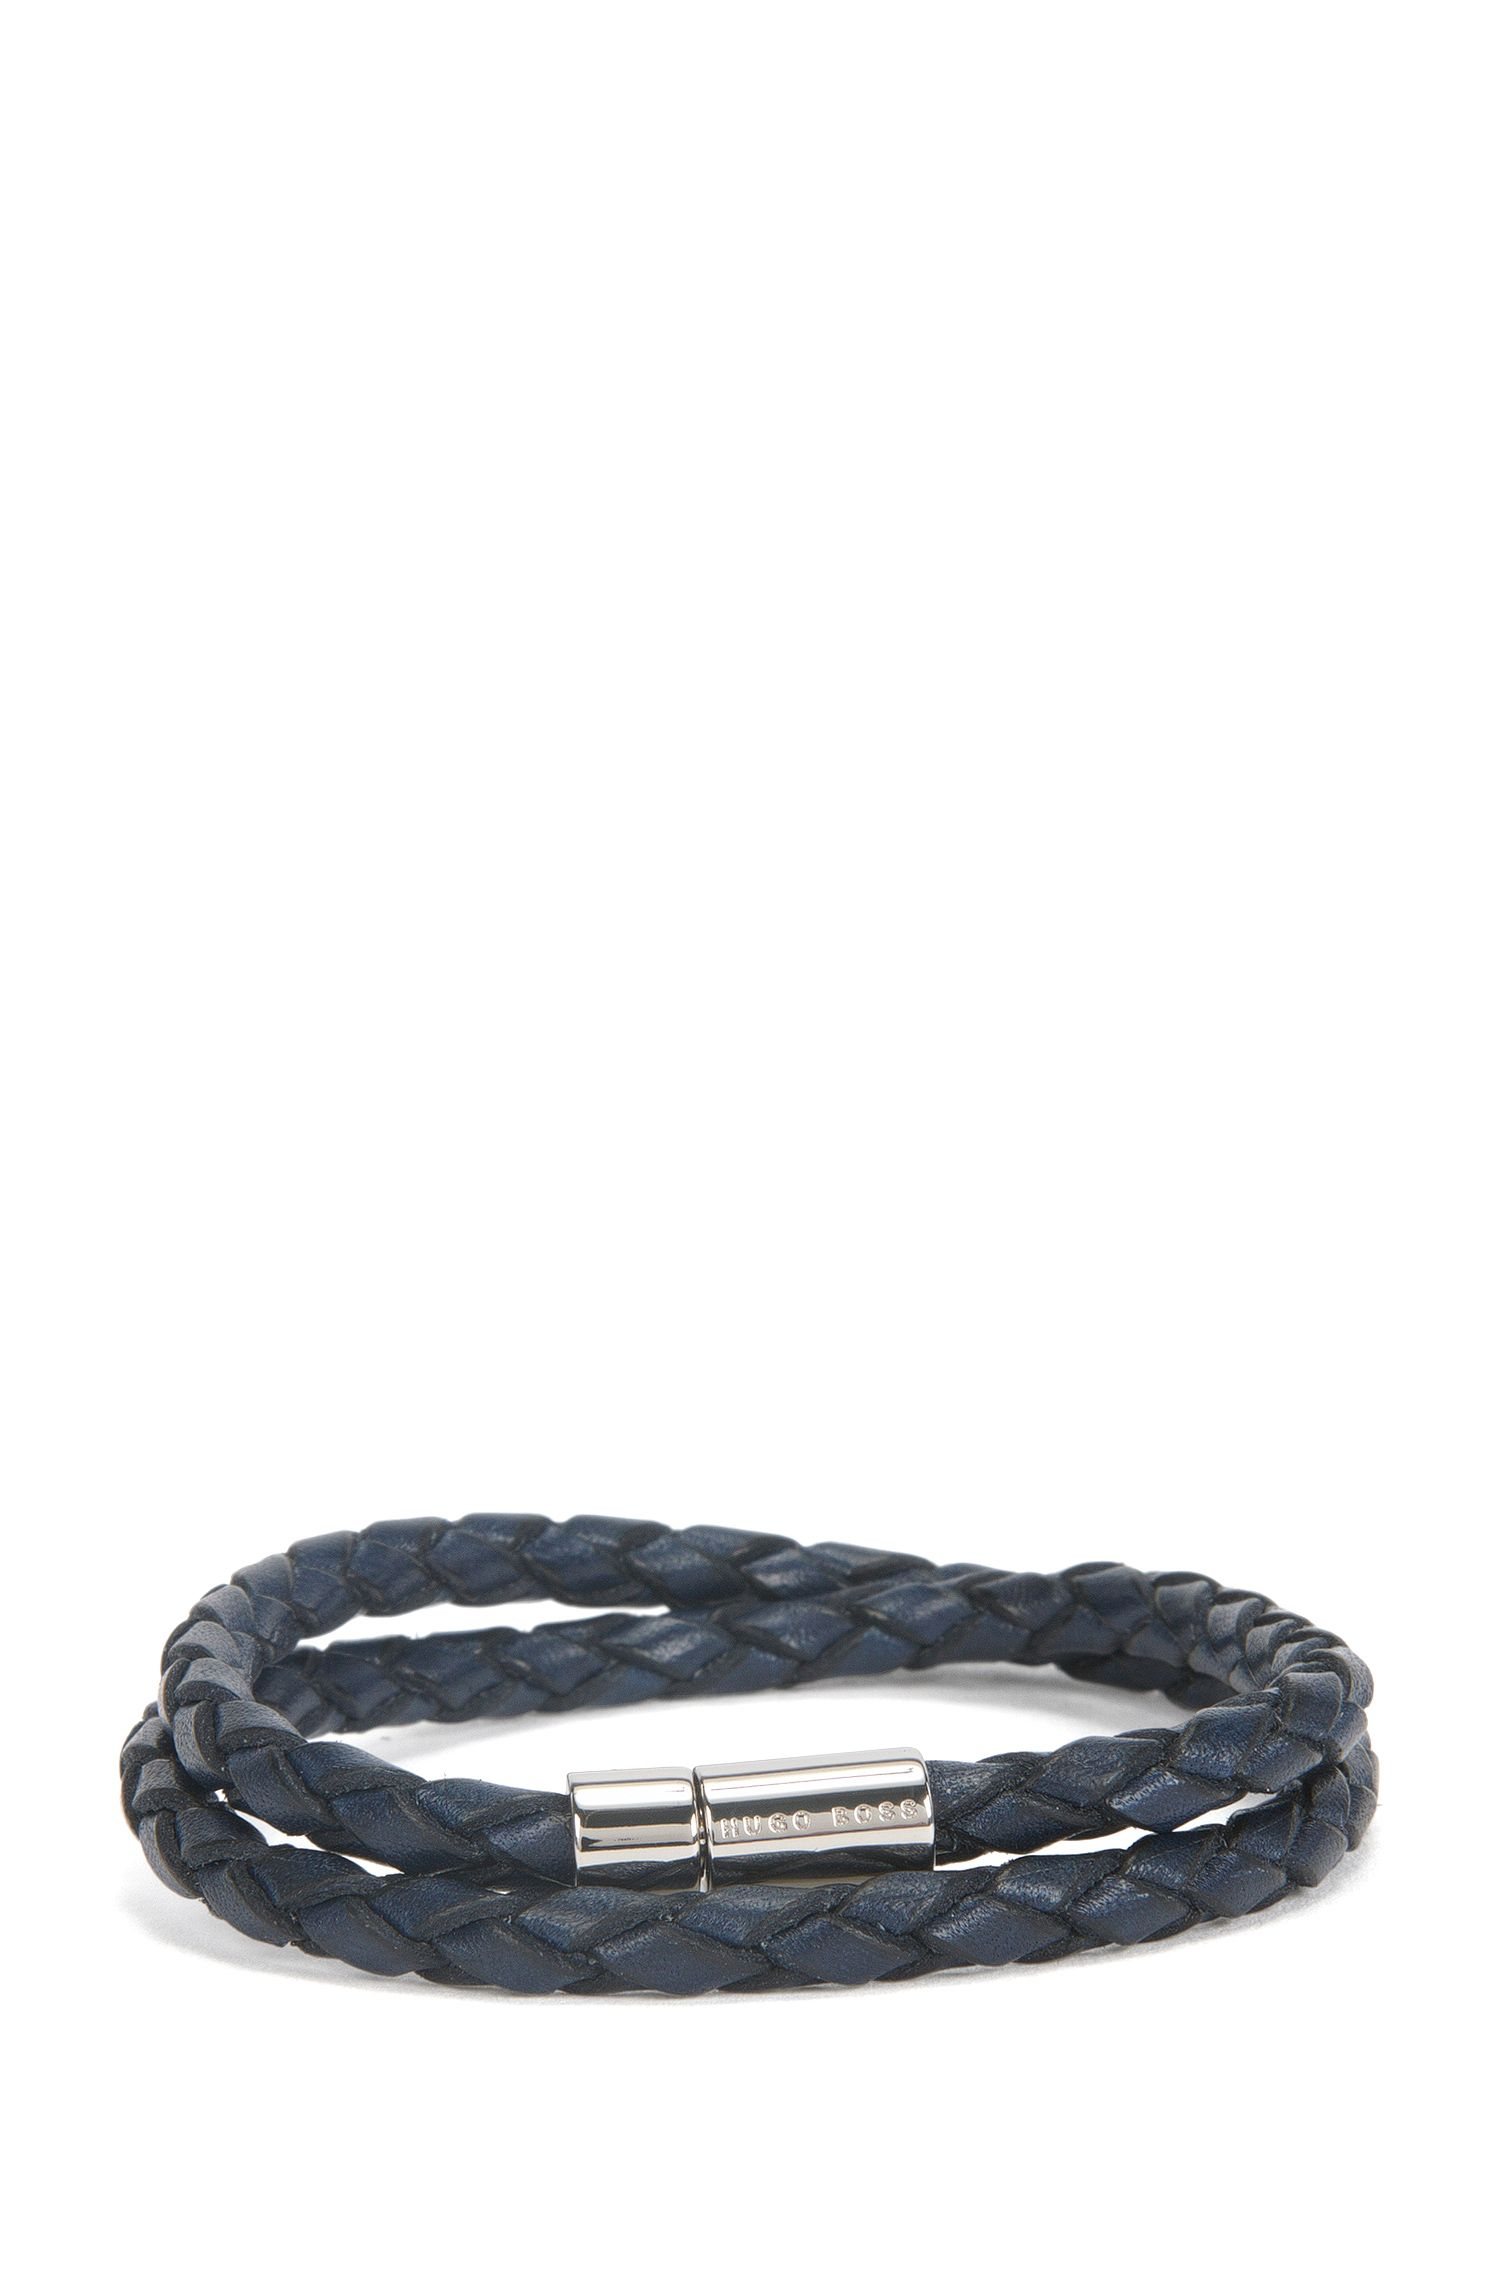 'Boris' | Leather Double-Wrap Bracelet, Dark Blue